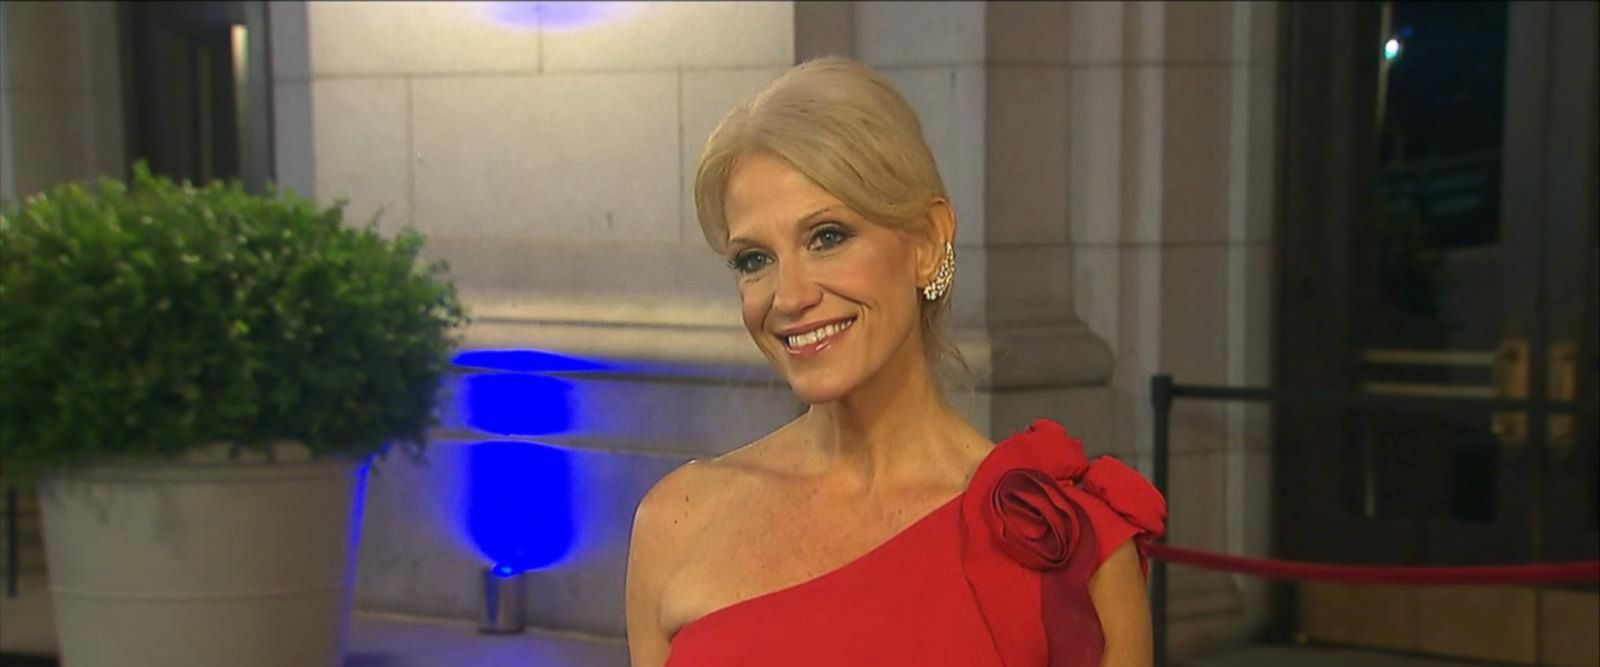 Conway spoke to reporters before entering an inauguration-eve candlelight dinner.